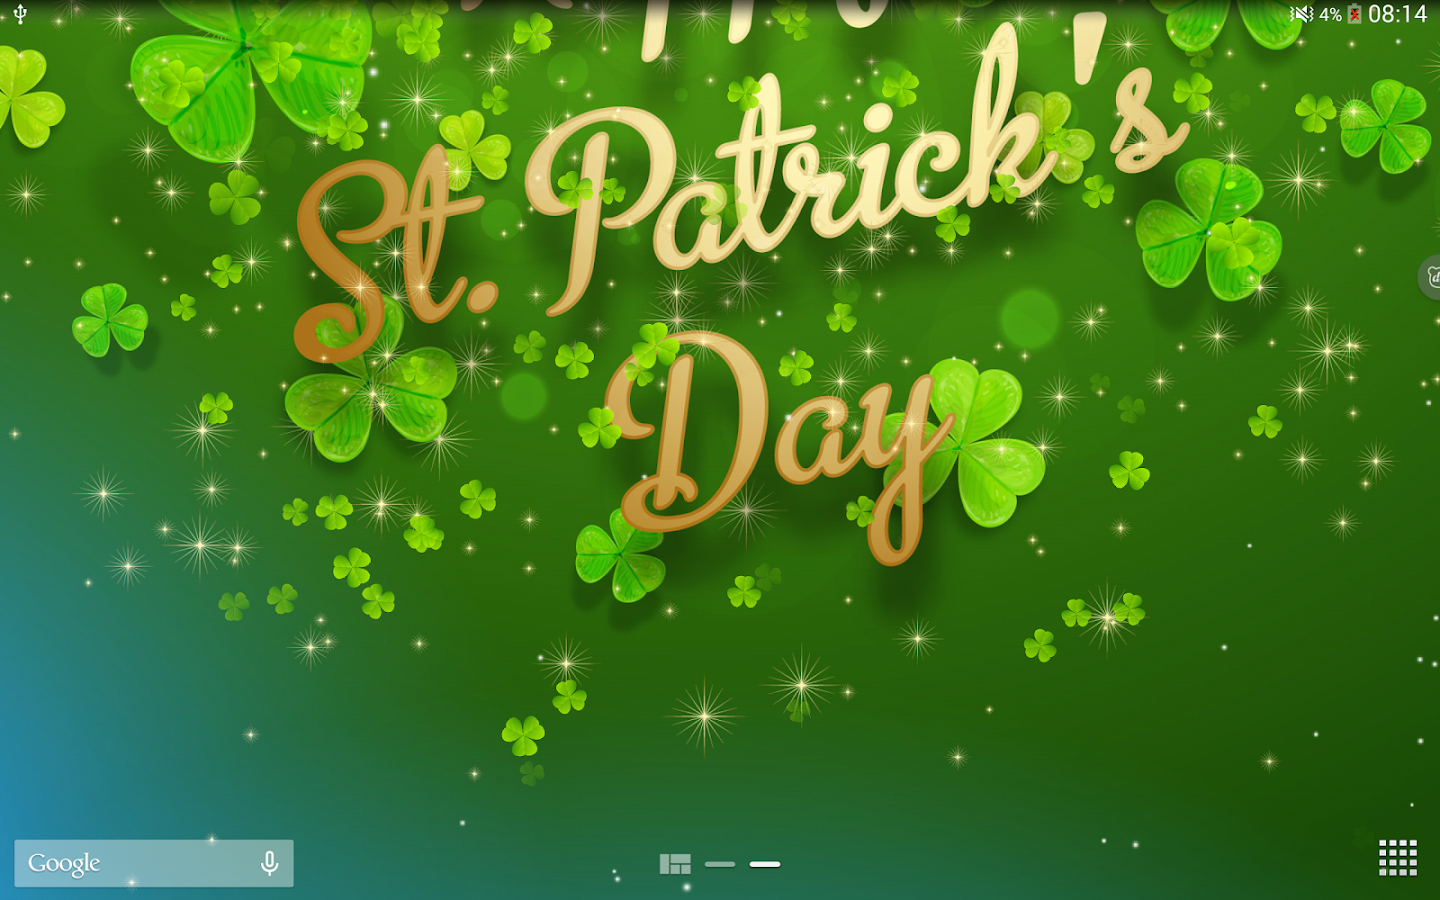 St Patricks Day Backgrounds Snowman Wallpapers 1440x900